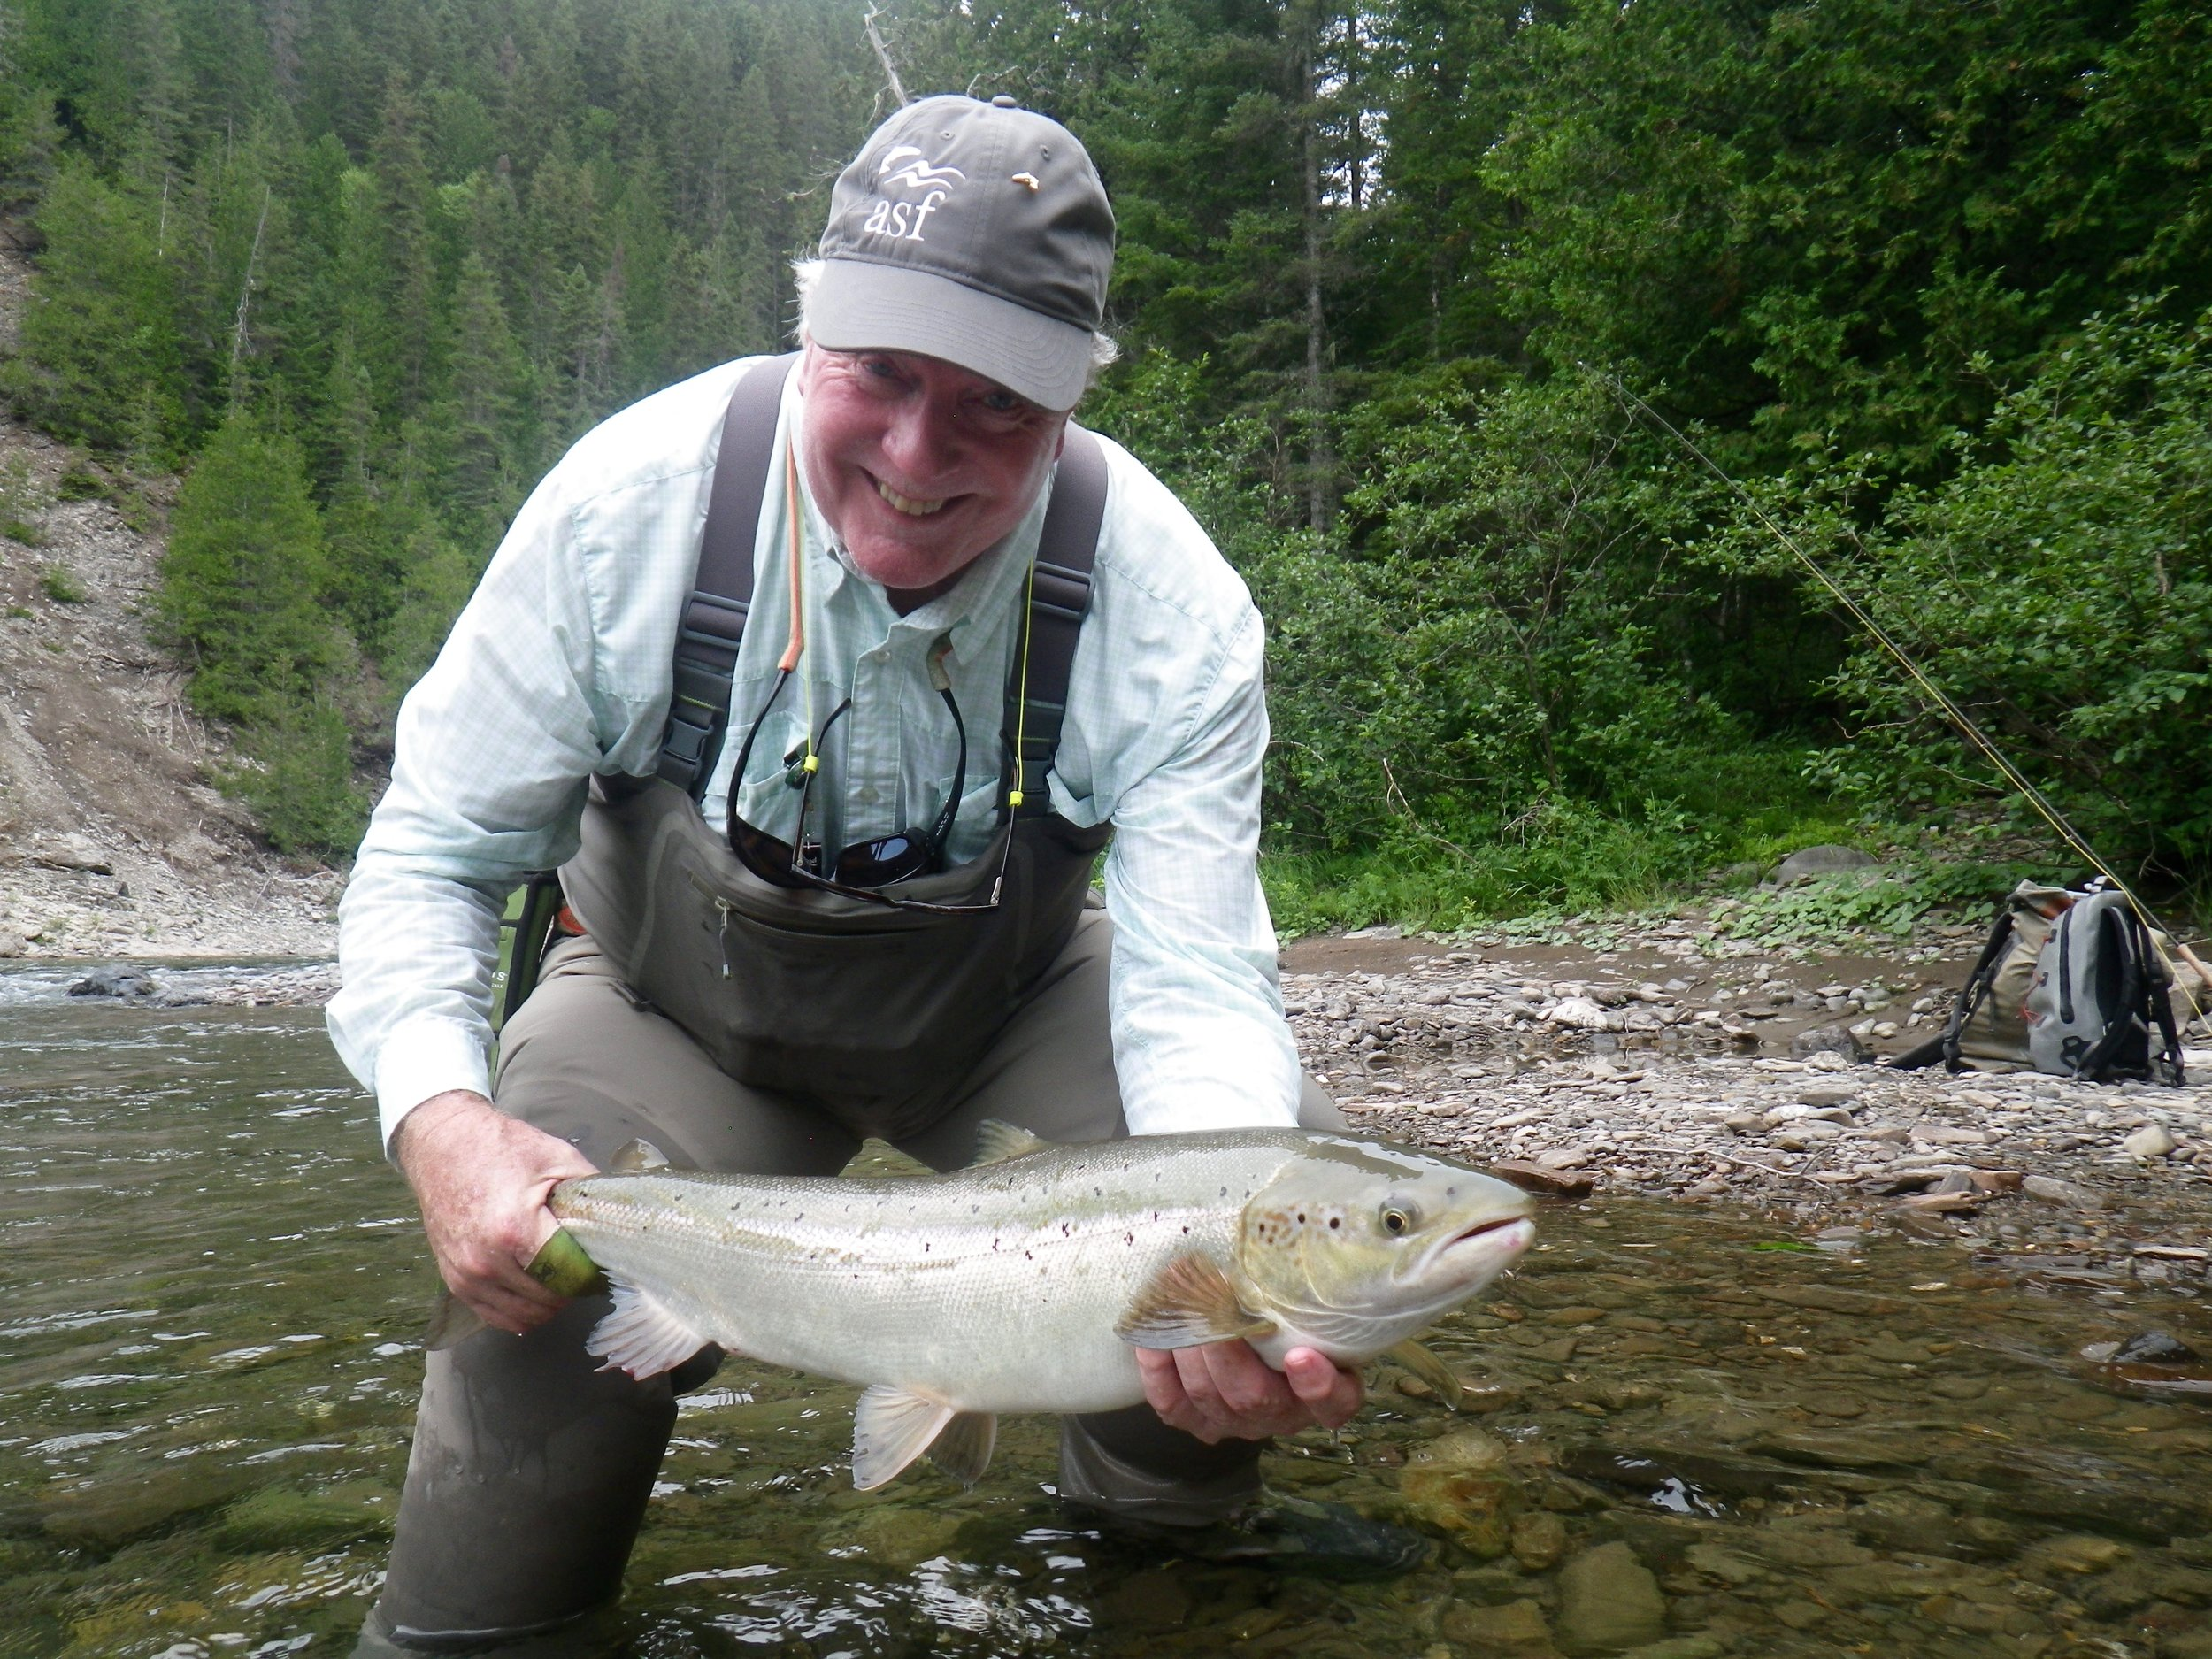 Camp Bonaventure regular Keith Williams with a nice salmon from the Bonaventure. Well done Keith, see you next year.